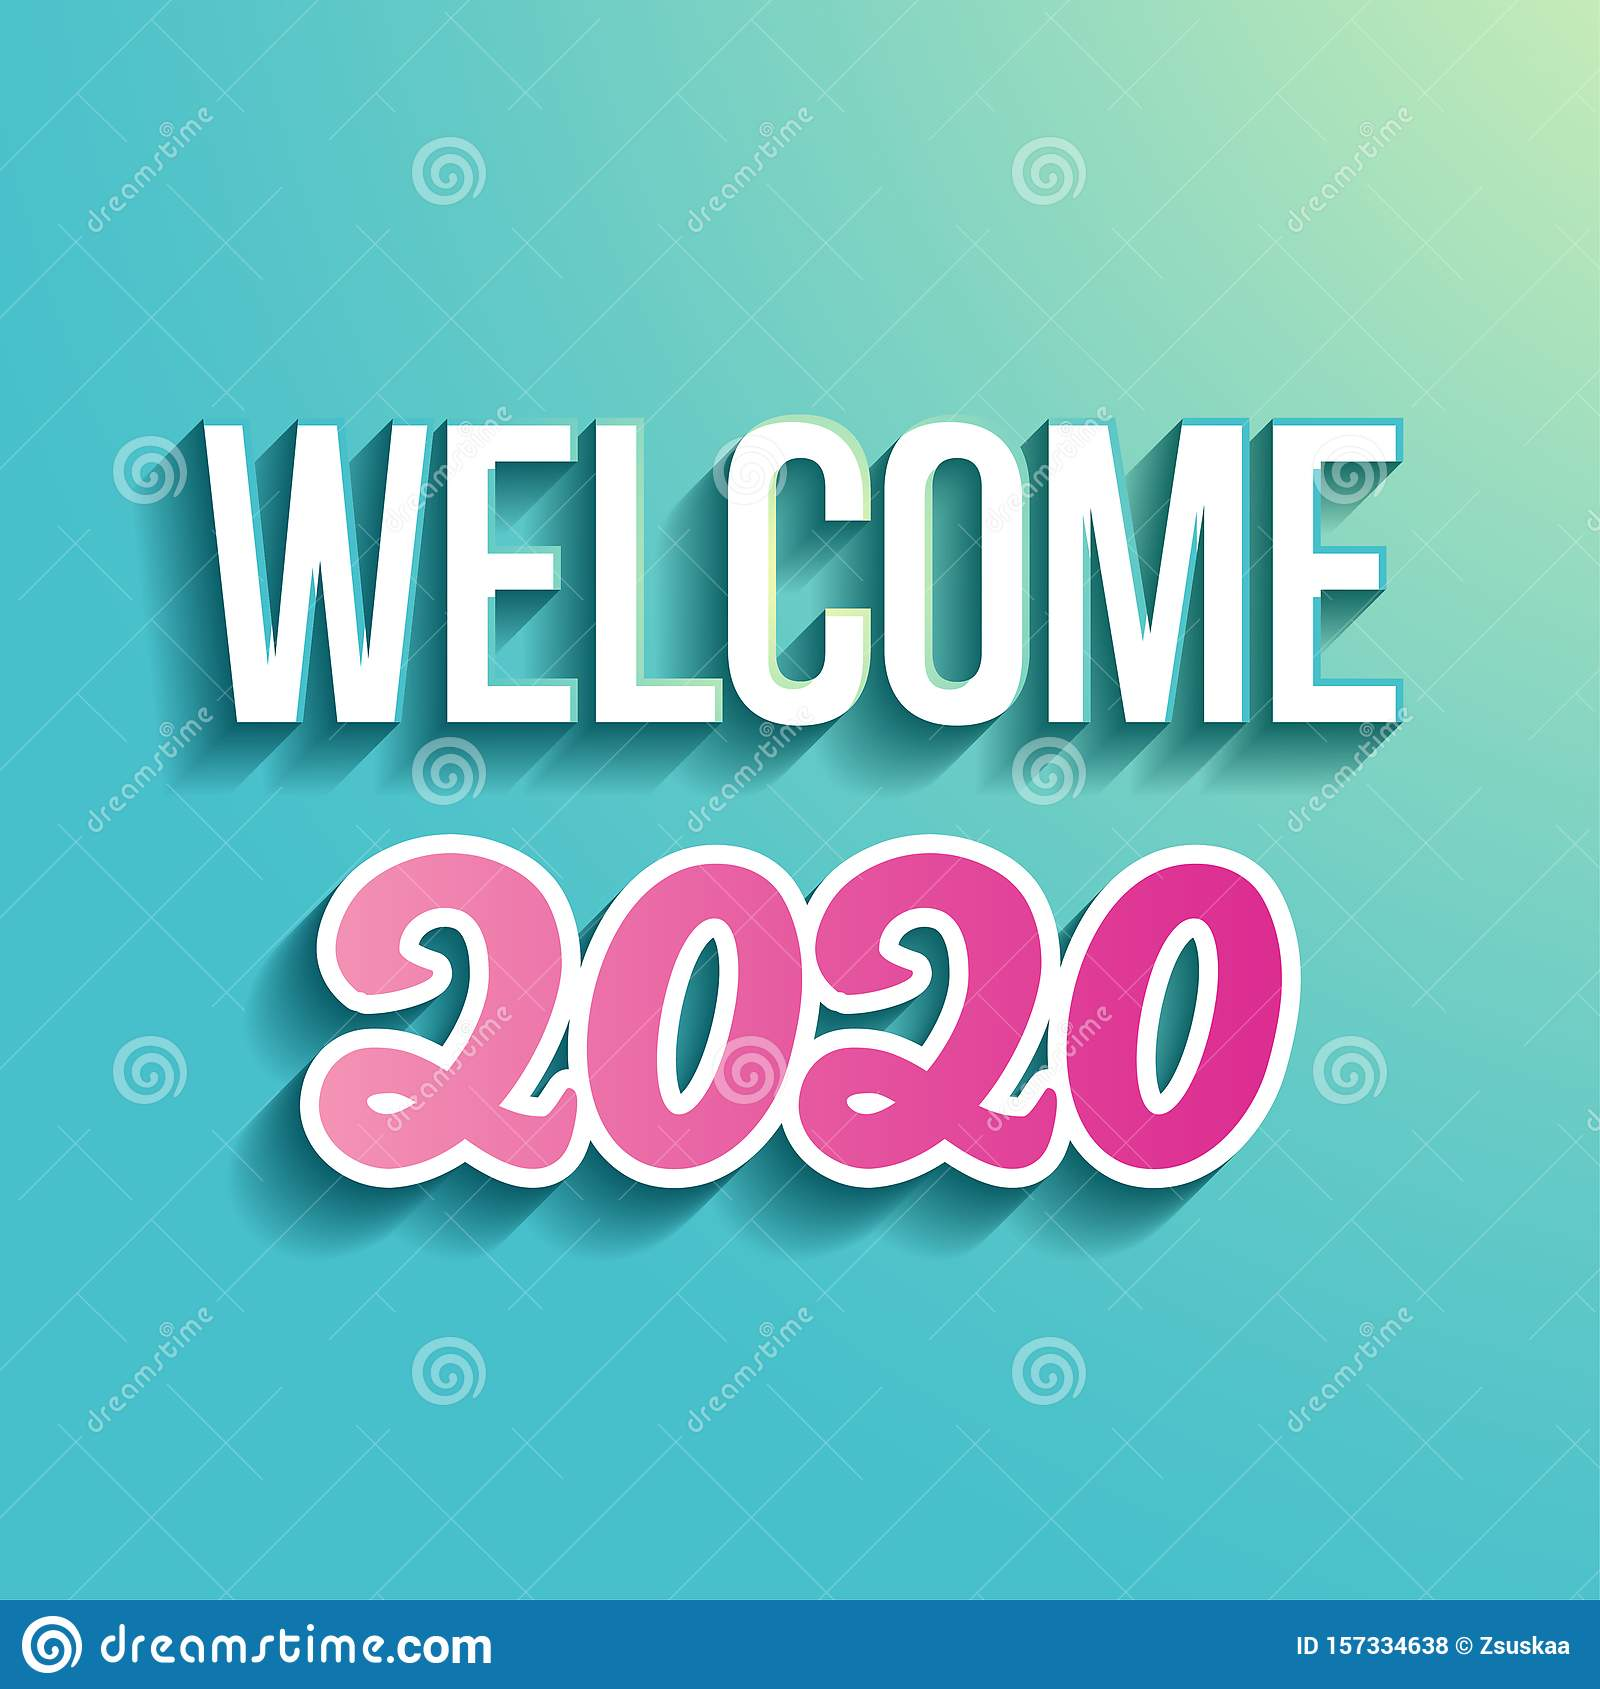 Welcome 2020, Happy New Year - calligraphy phrase for Holidays.